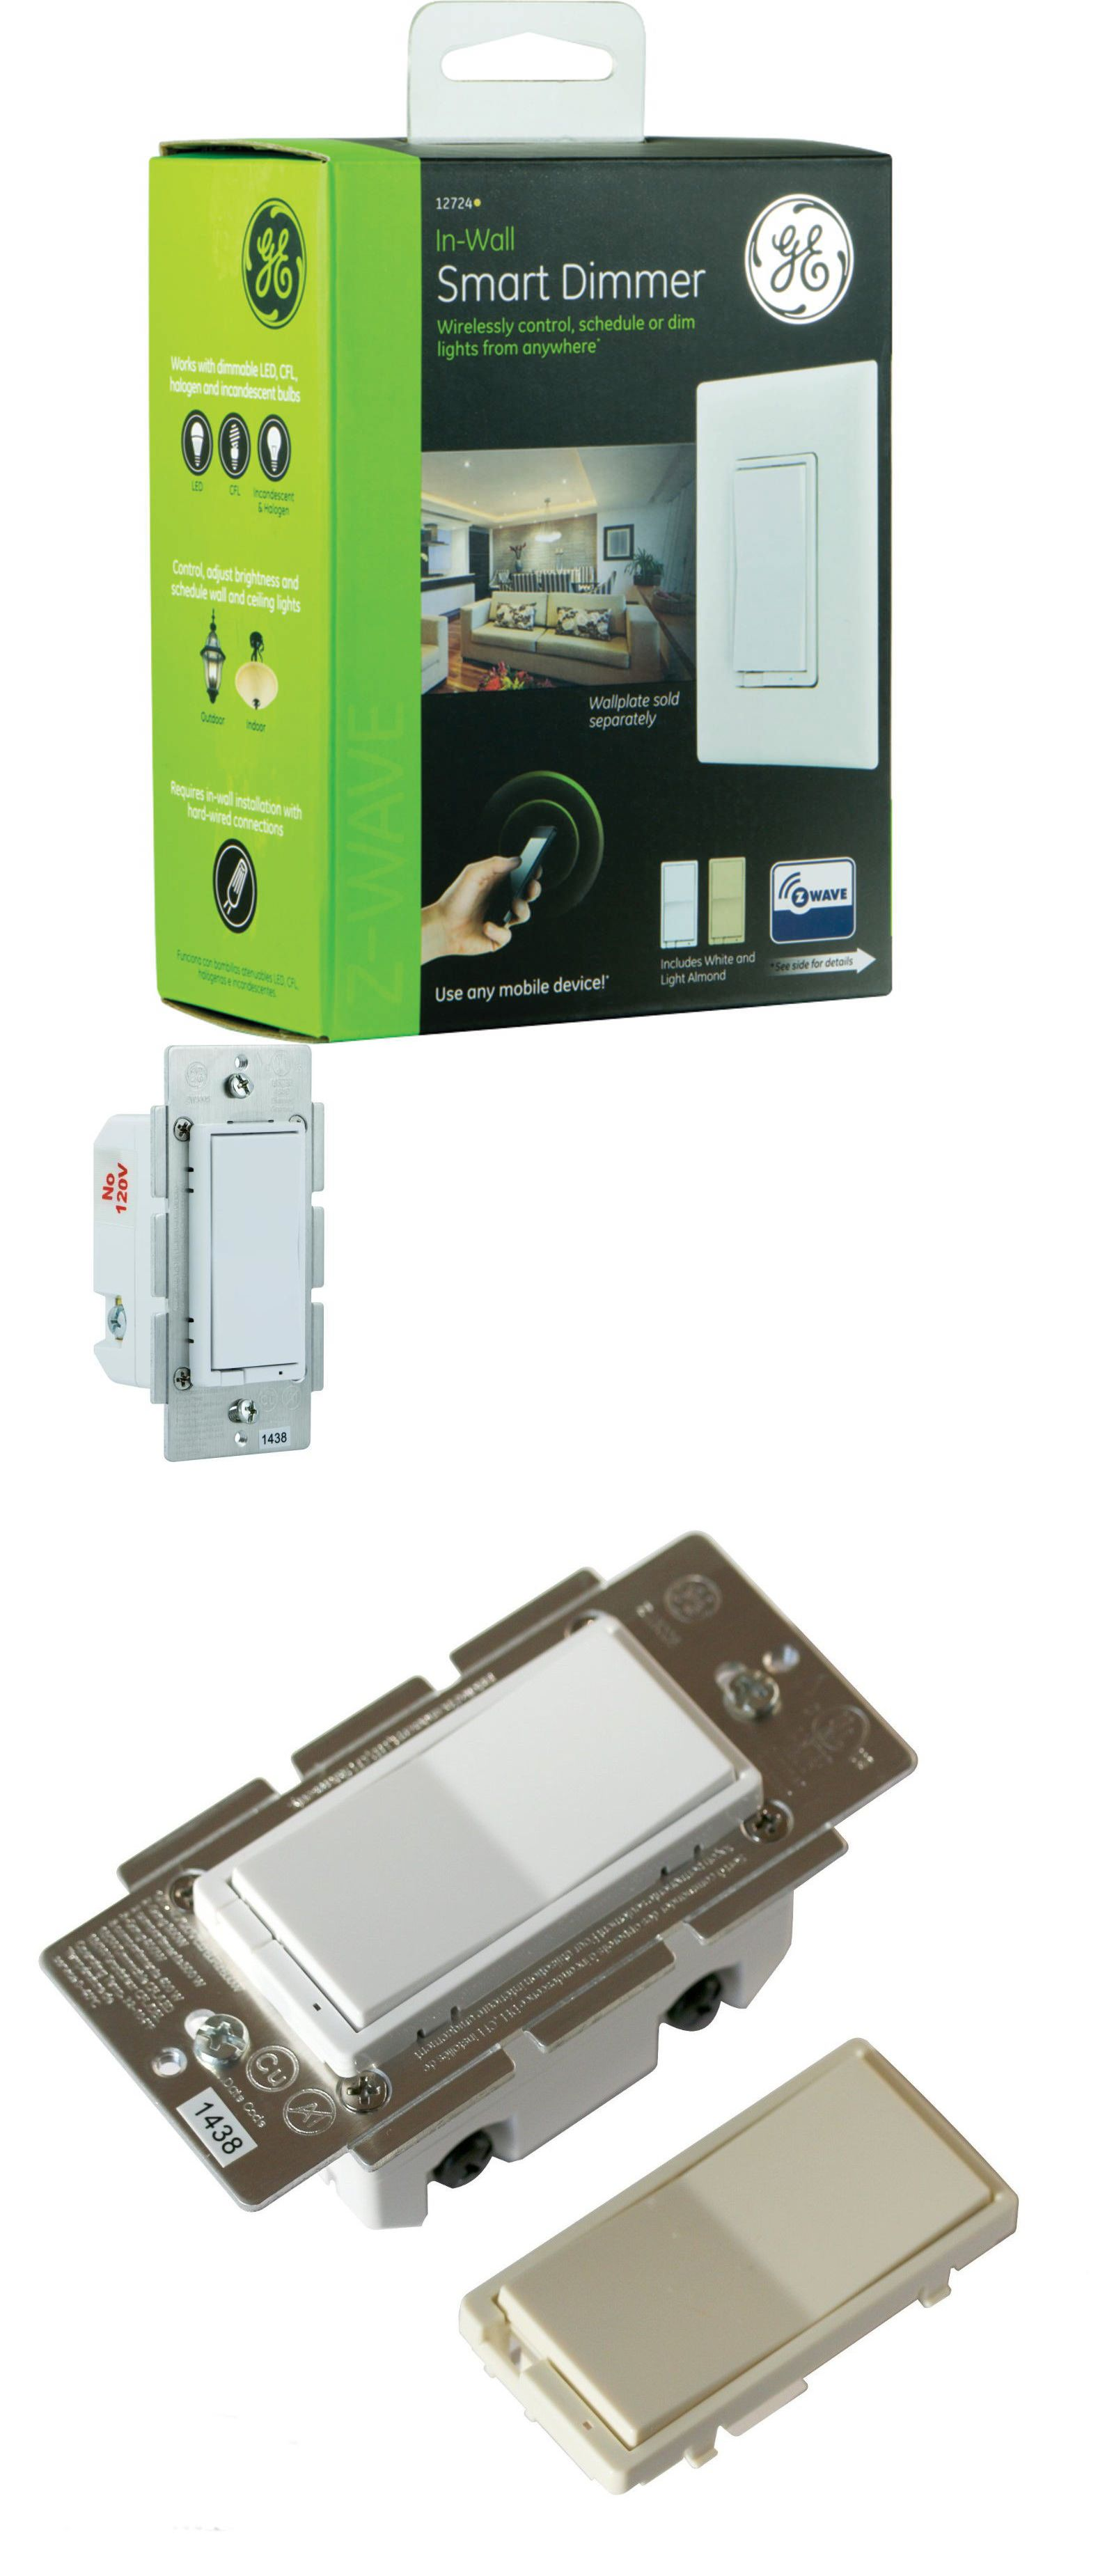 Home Automation Modules: Ge 12724 Z-Wave 600 Watt Cfl-Led Indoor In ...